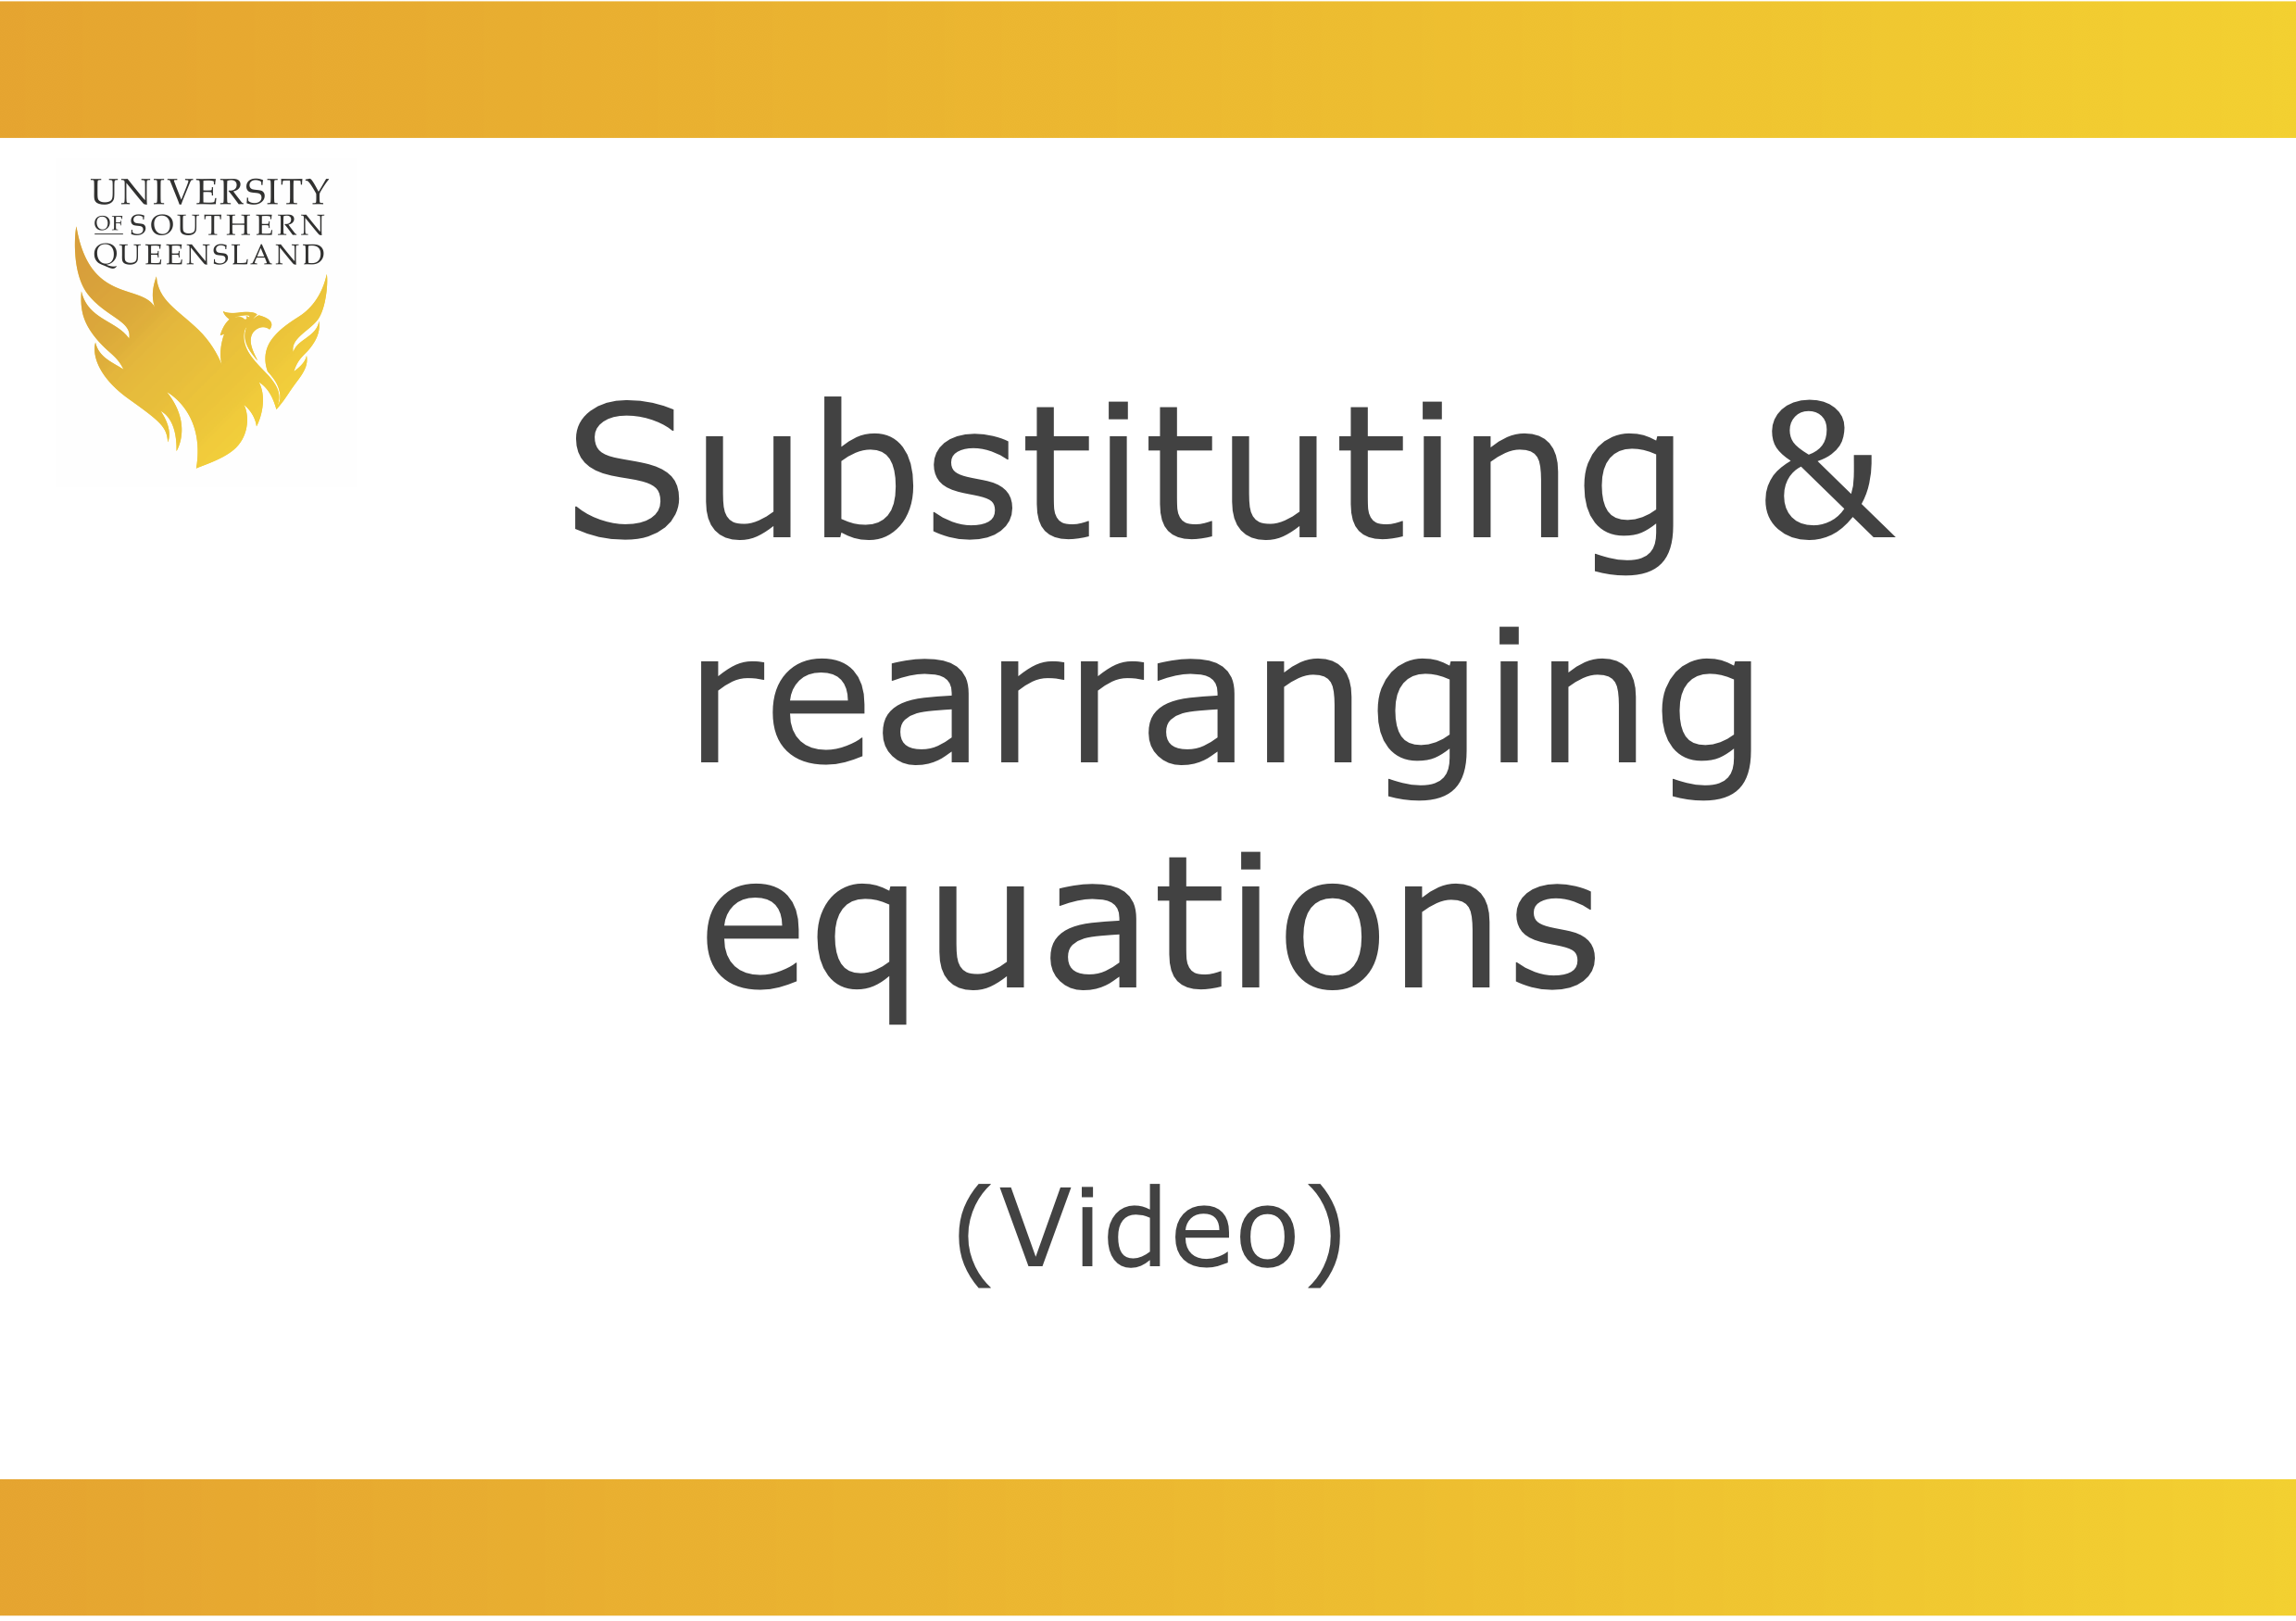 image to click on to play the video:  Substituting and rearranging equations